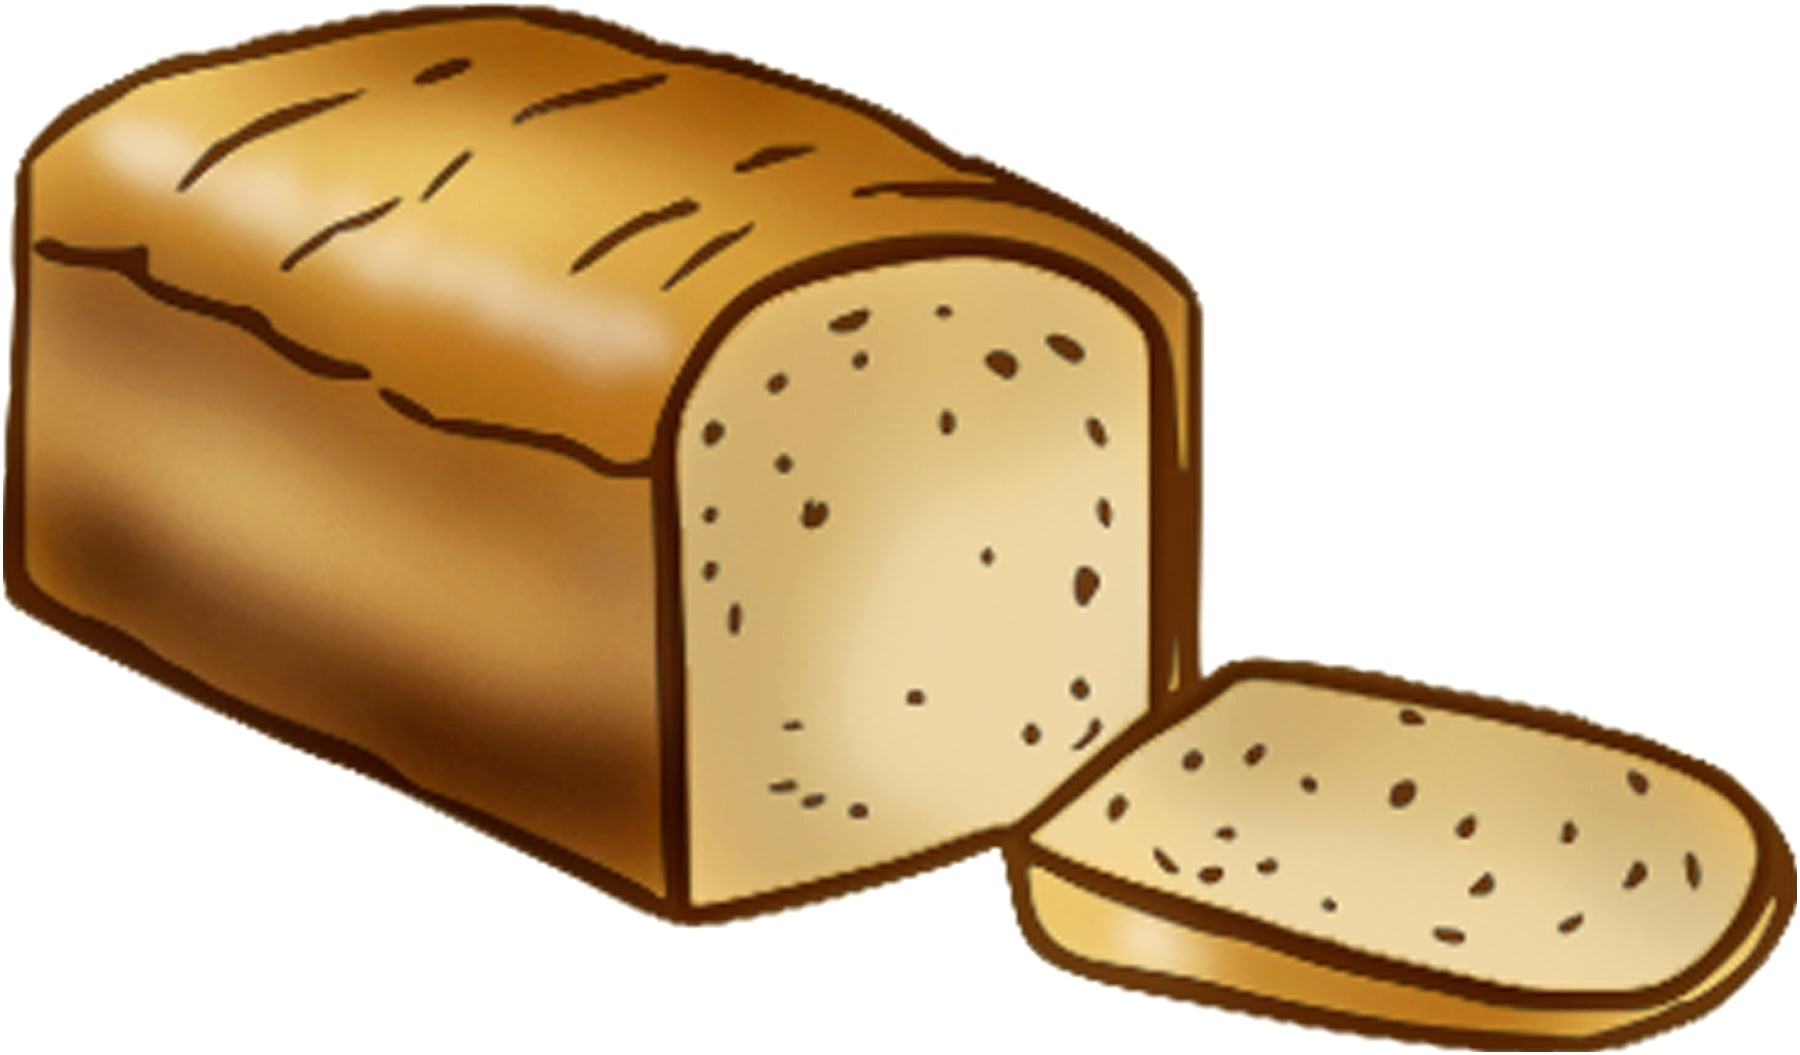 Loaf bread clipart 5 » Clipart Station.